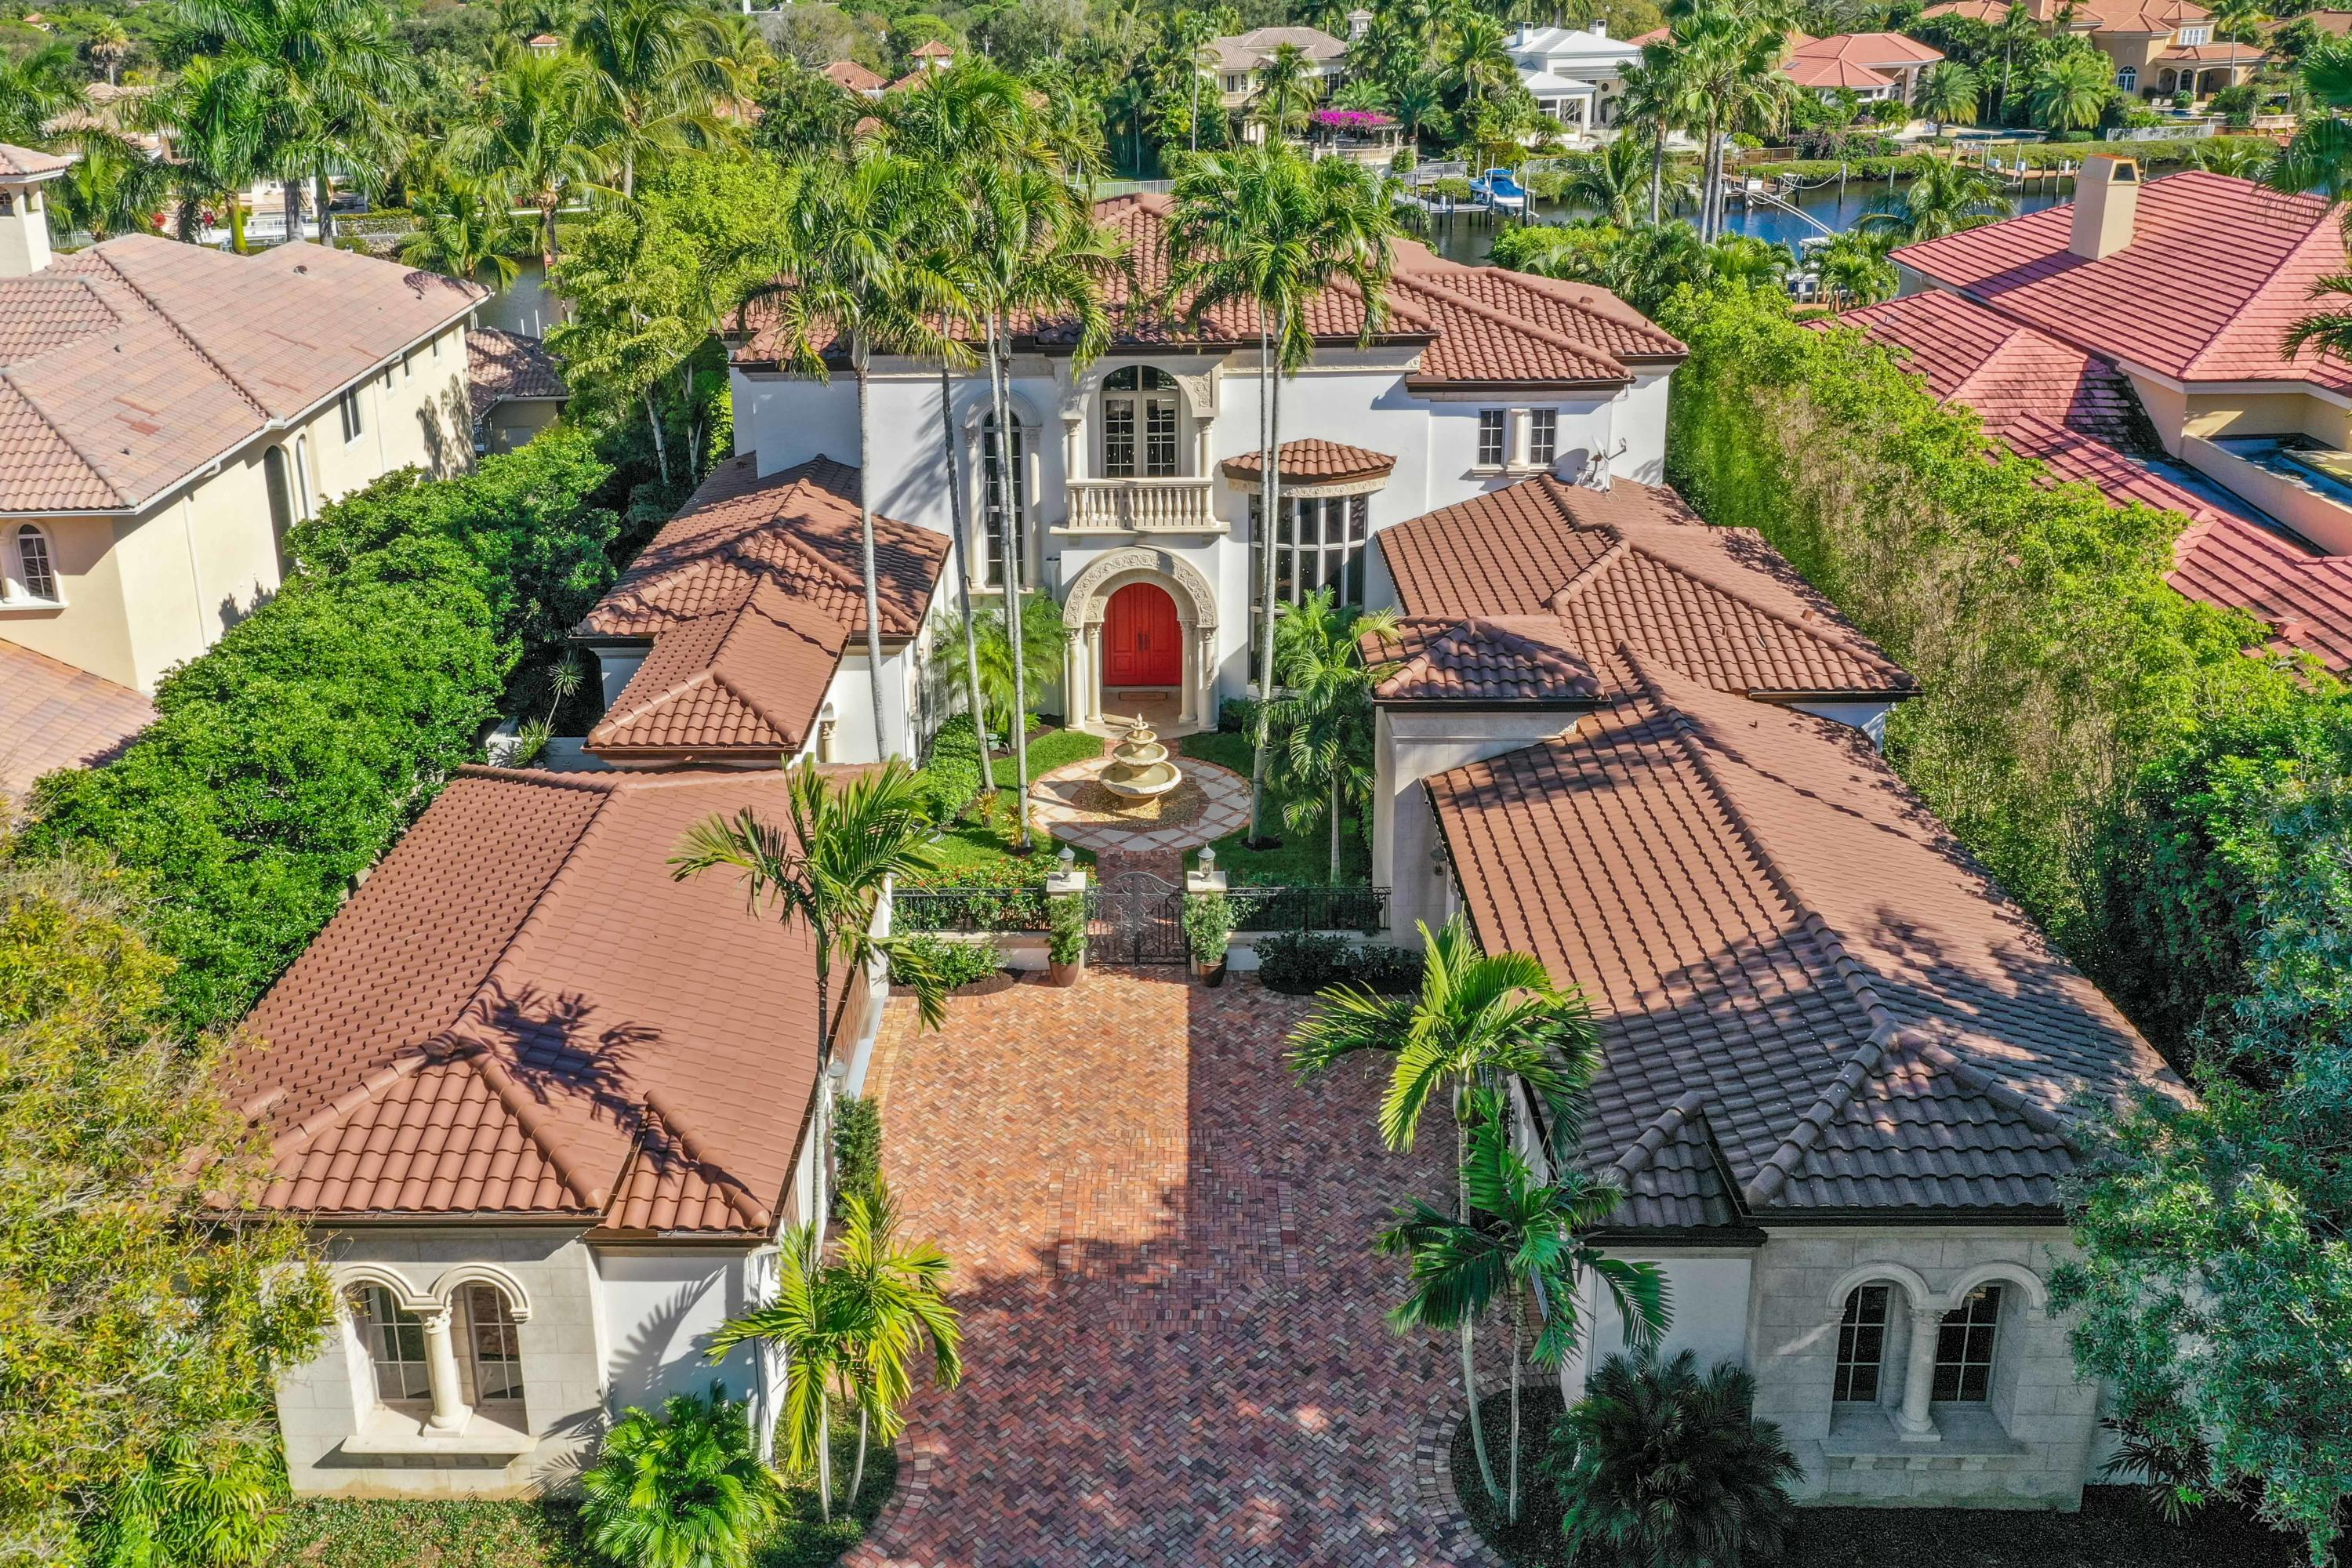 New Home for sale at 387 Eagle Drive in Jupiter